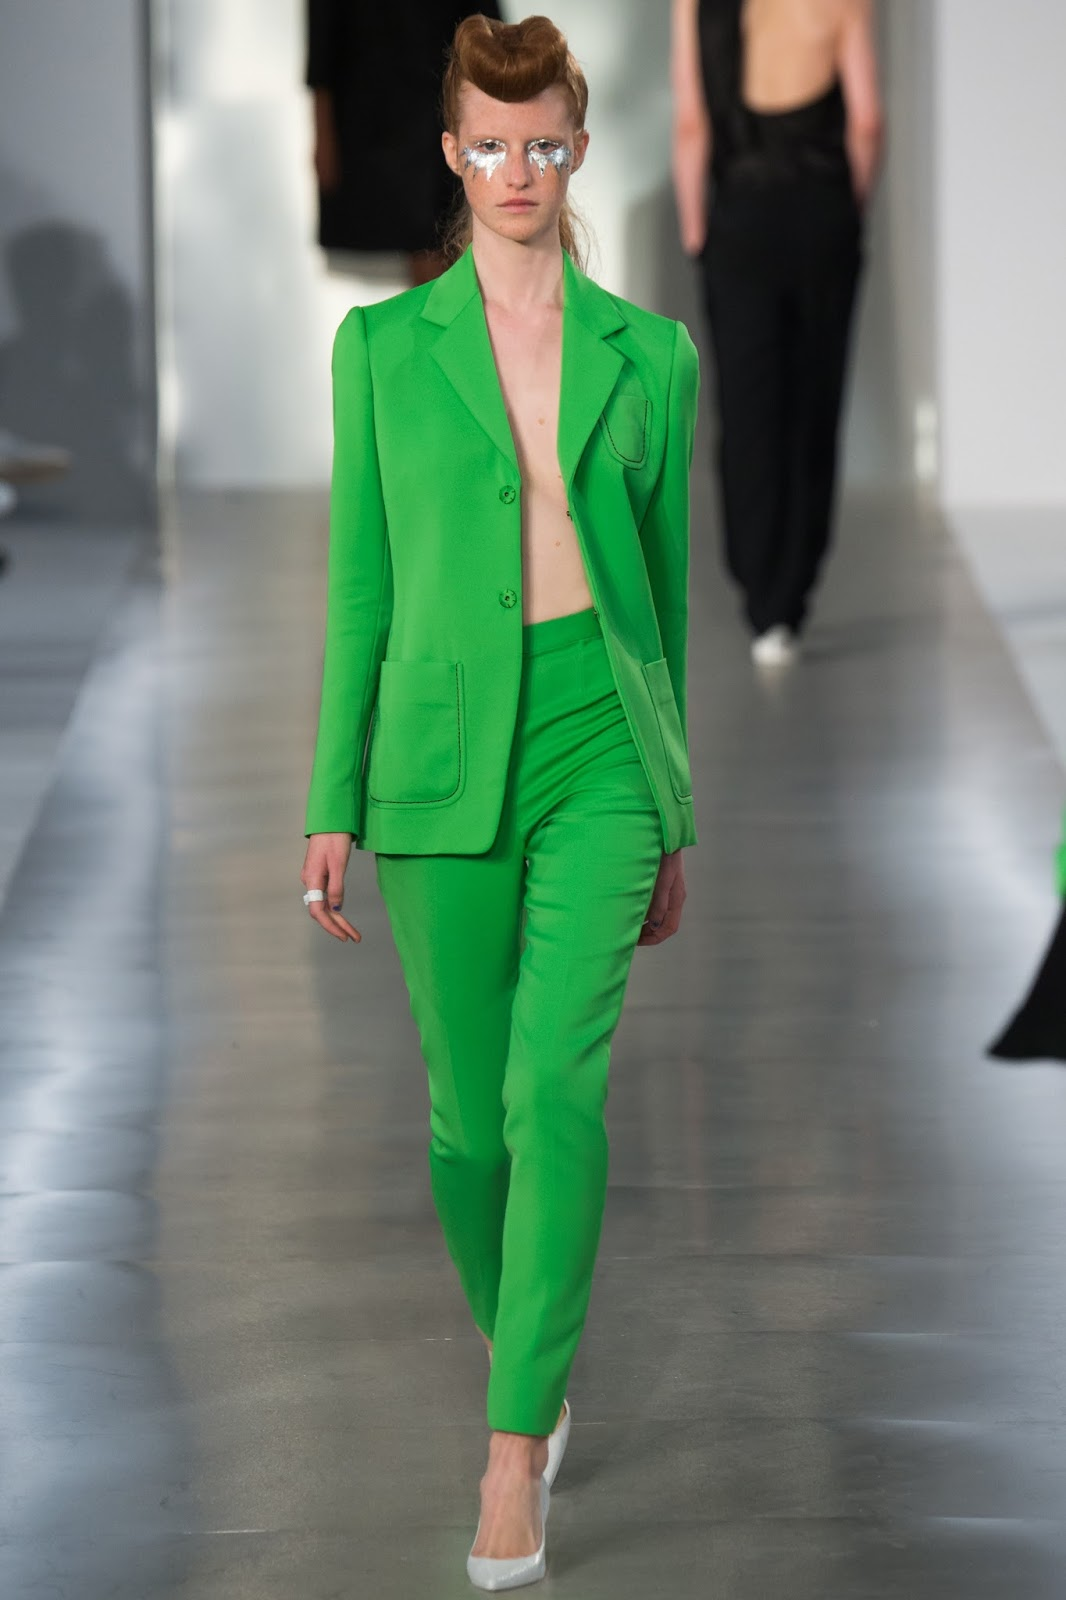 Pantone colour report & spring summer 2016 fashion trends / green flash at Maison Margiela Spring/Sumemr 2016 via www.fashionedbylove.co.uk British fashion & style blog